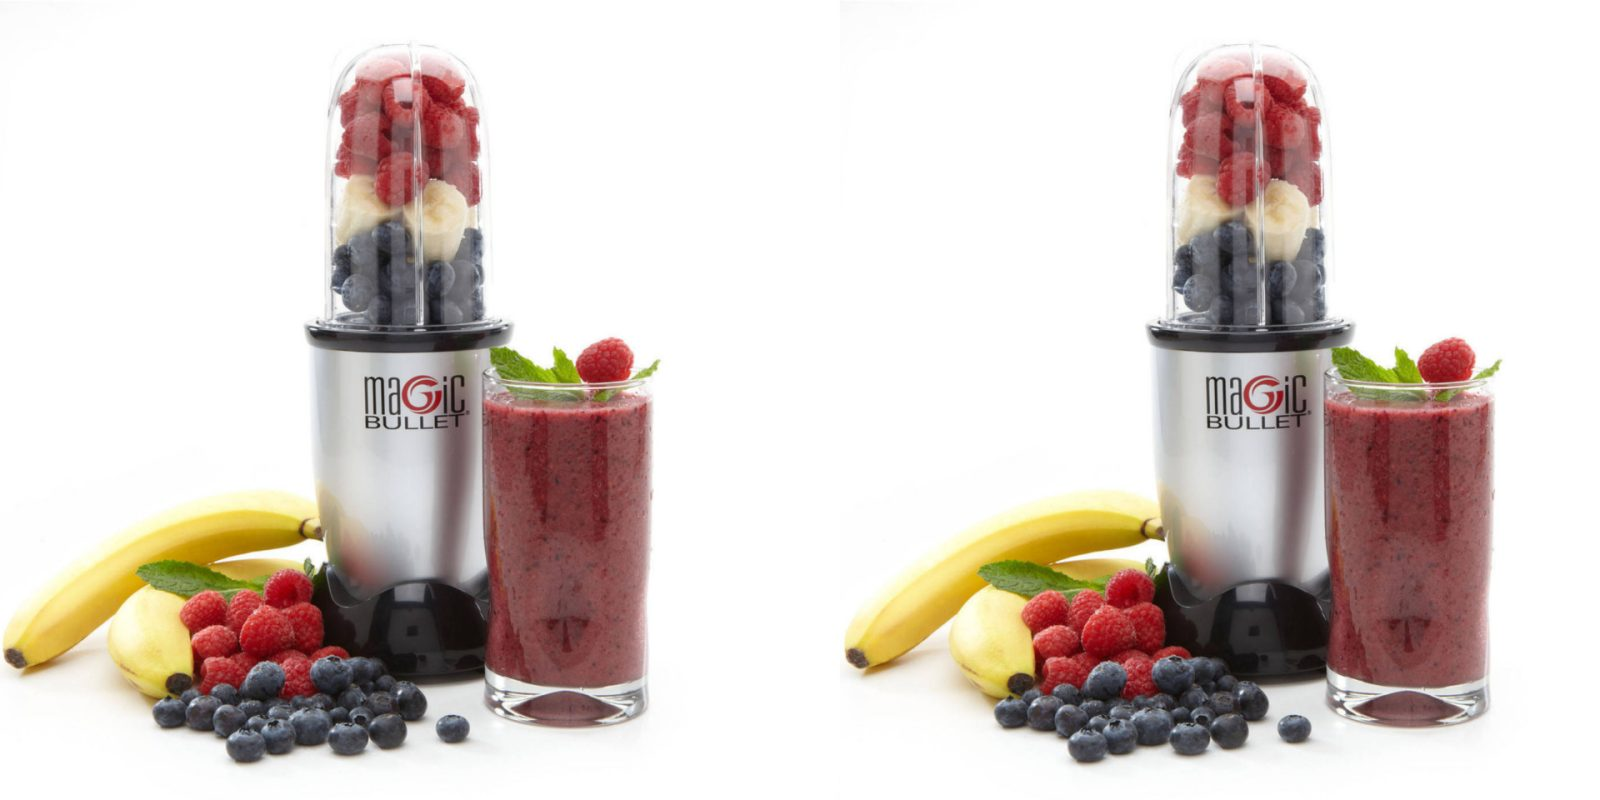 Magic Bullet Blender is the perfect smoothie maker at $20 (Reg. $30) + more